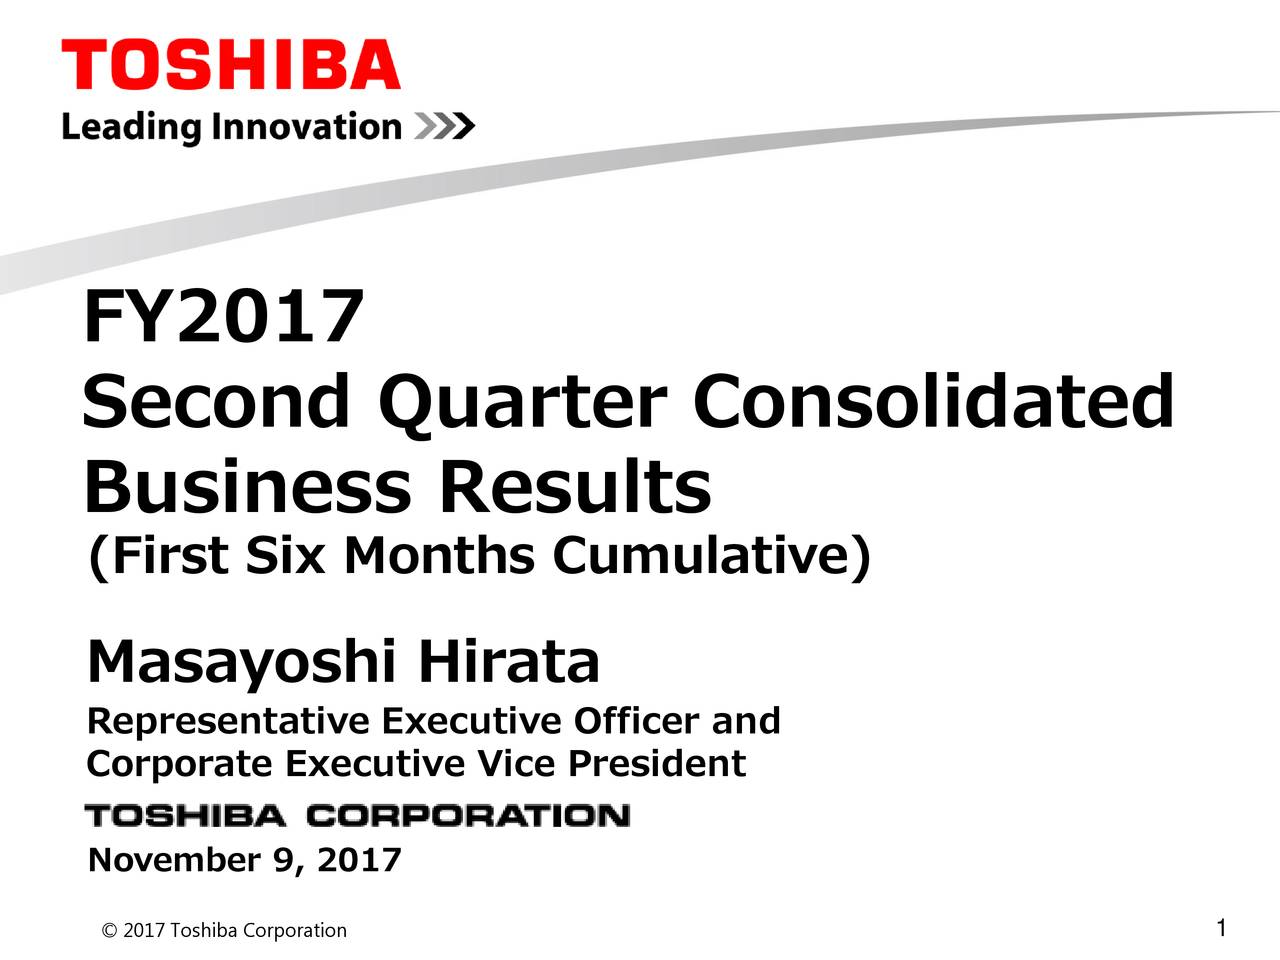 Second Quarter Consolidated Business Results (First Six Months Cumulative) Masayoshi Hirata Representative Executive Officer and Corporate Executive Vice President November 9, 2017 1